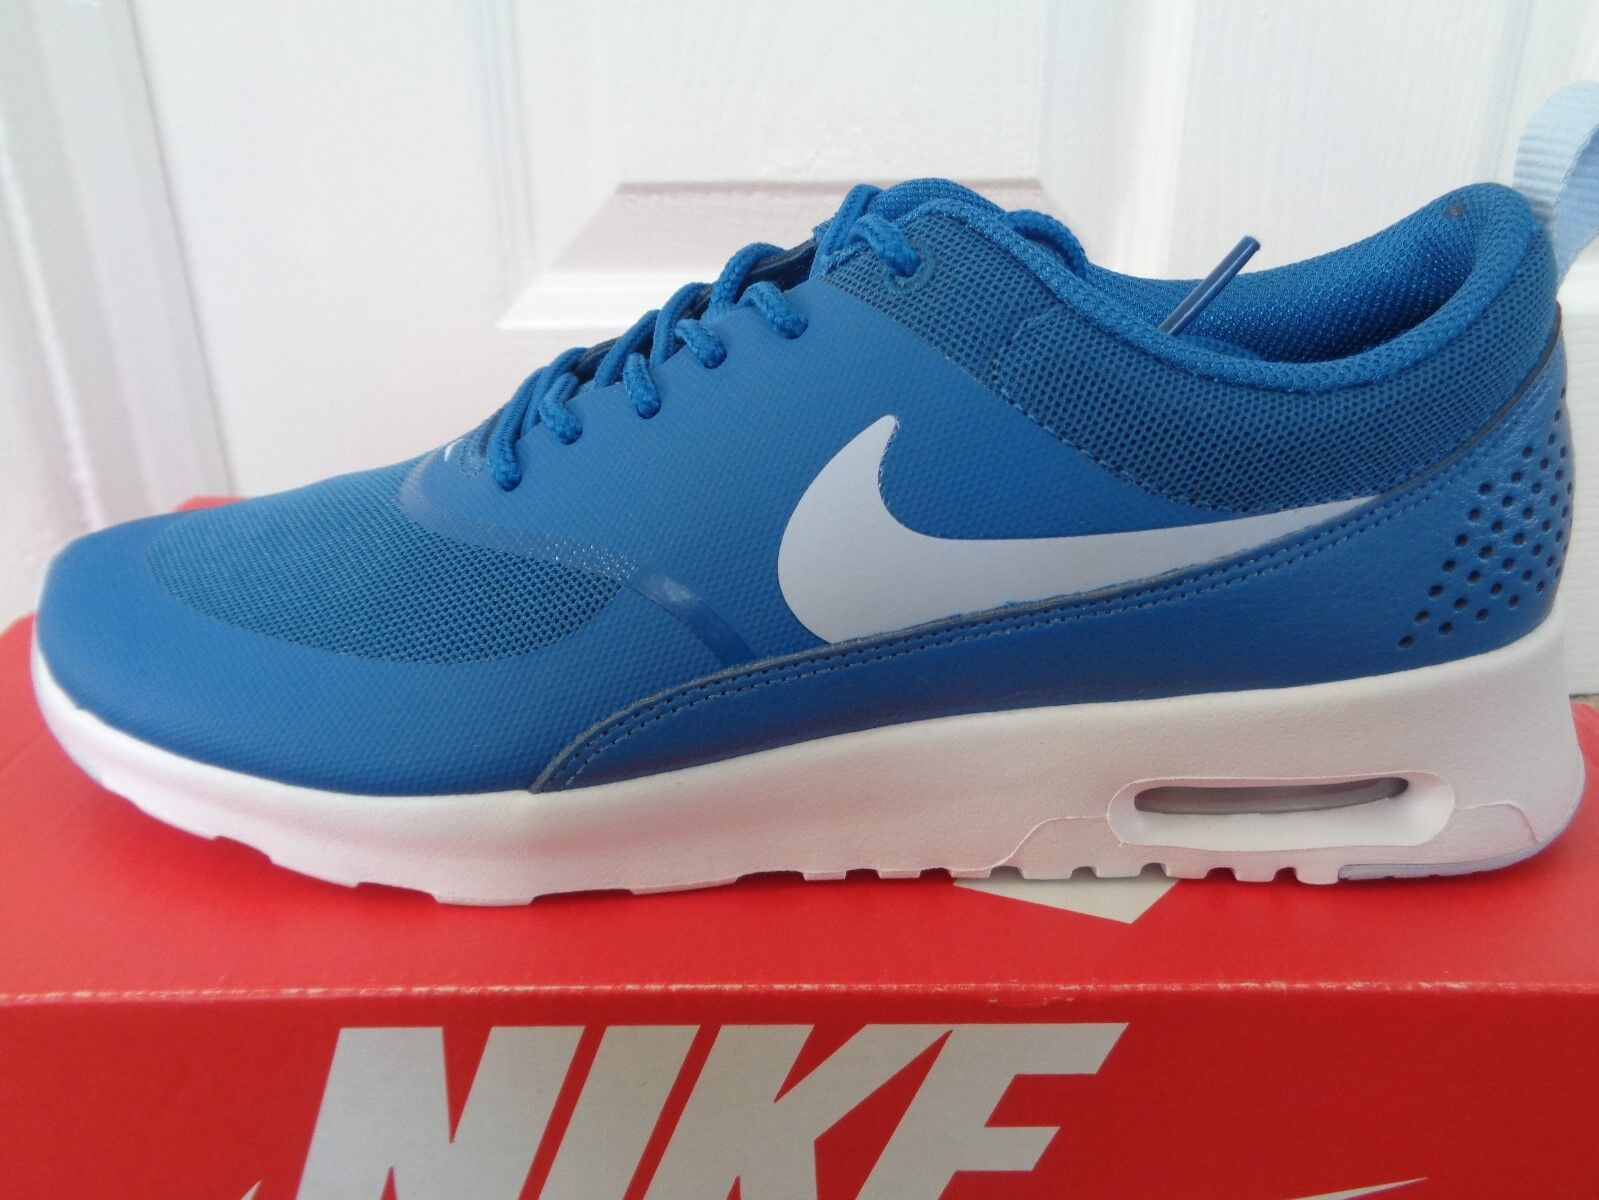 Nike Air Max Thea Femme trainers sneakers 599409 410 uk 6 eu 40 us 8.5 NEW+BOX